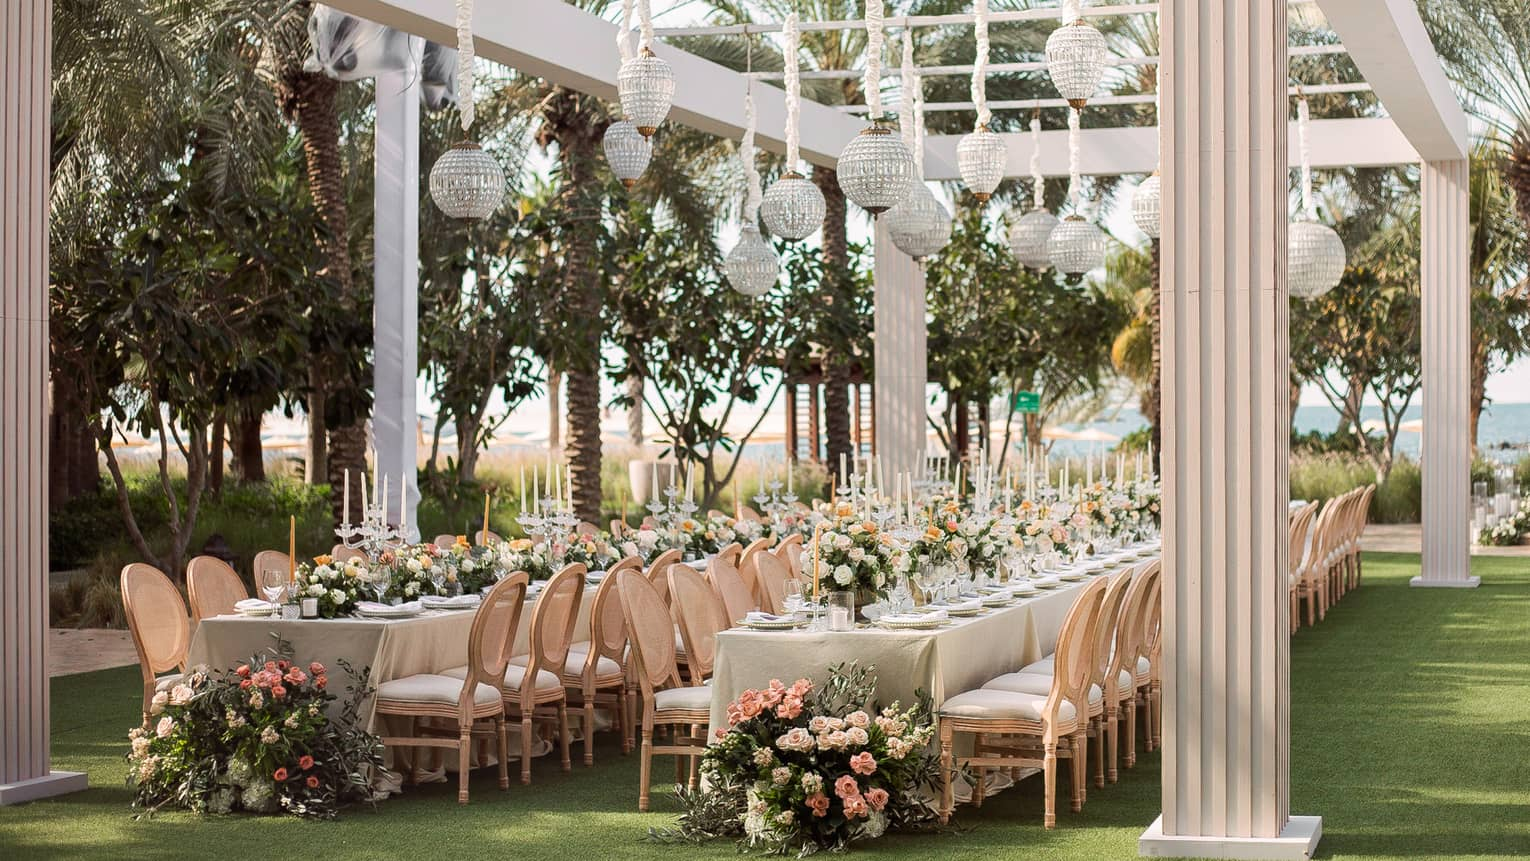 Garden wedding, glass lanterns hang from white pergola over long dining tables